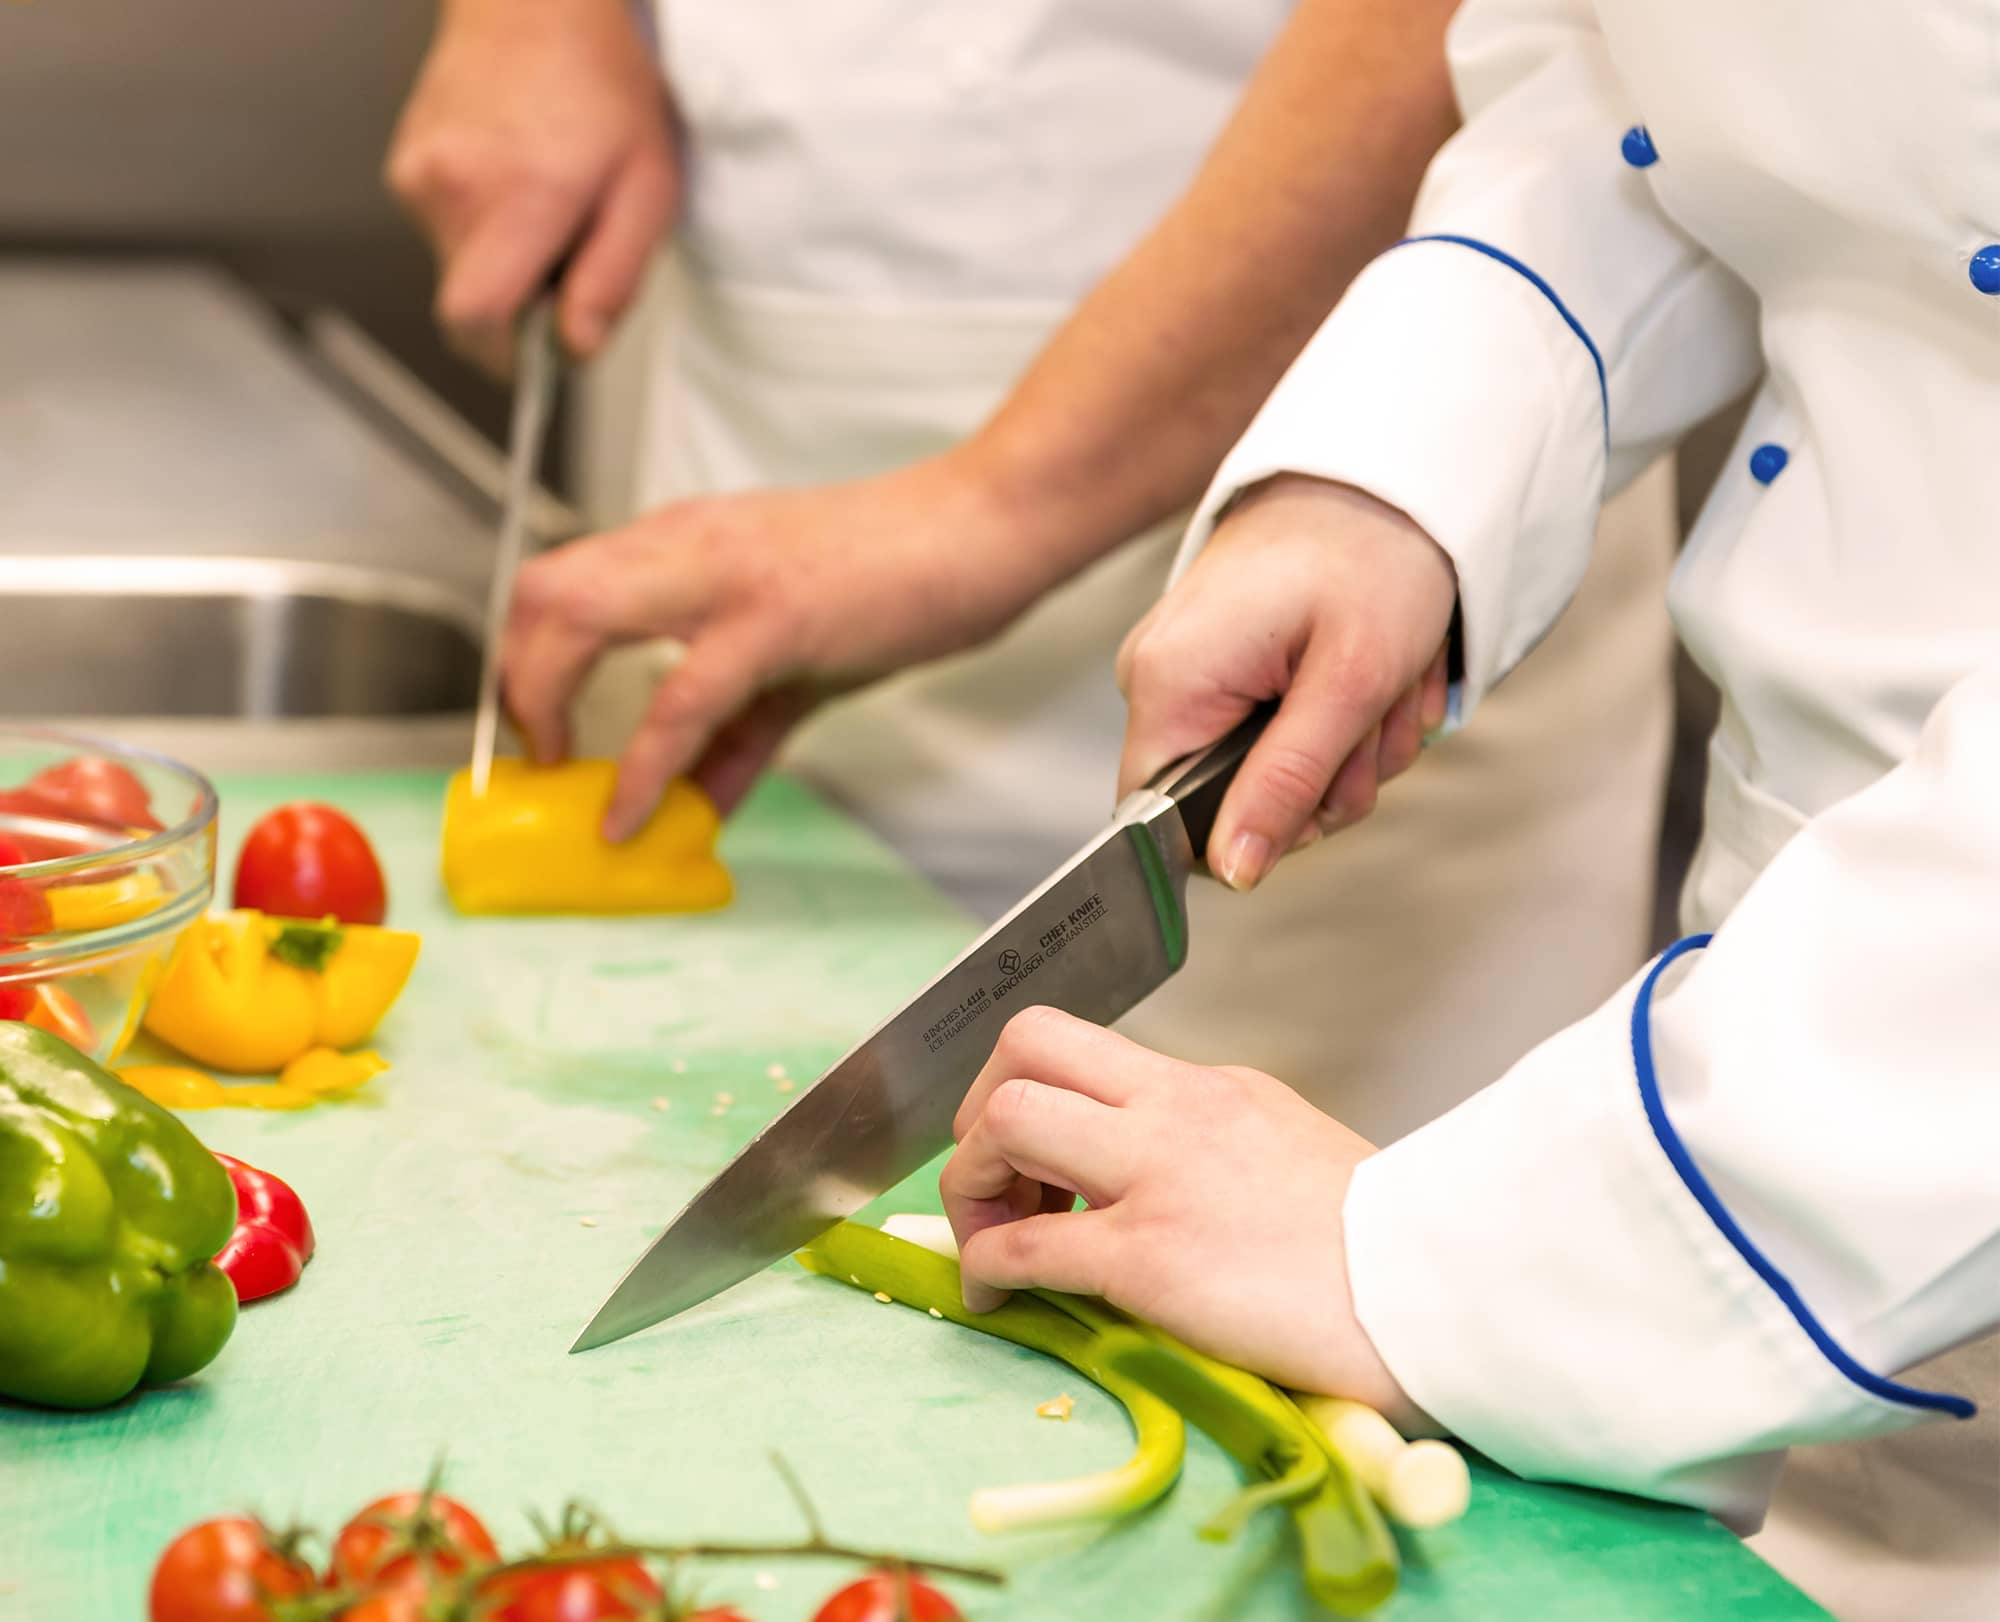 Chefs use Benchusch Professional 8-Inch Chef Knife cutting vegetables in the kitchen